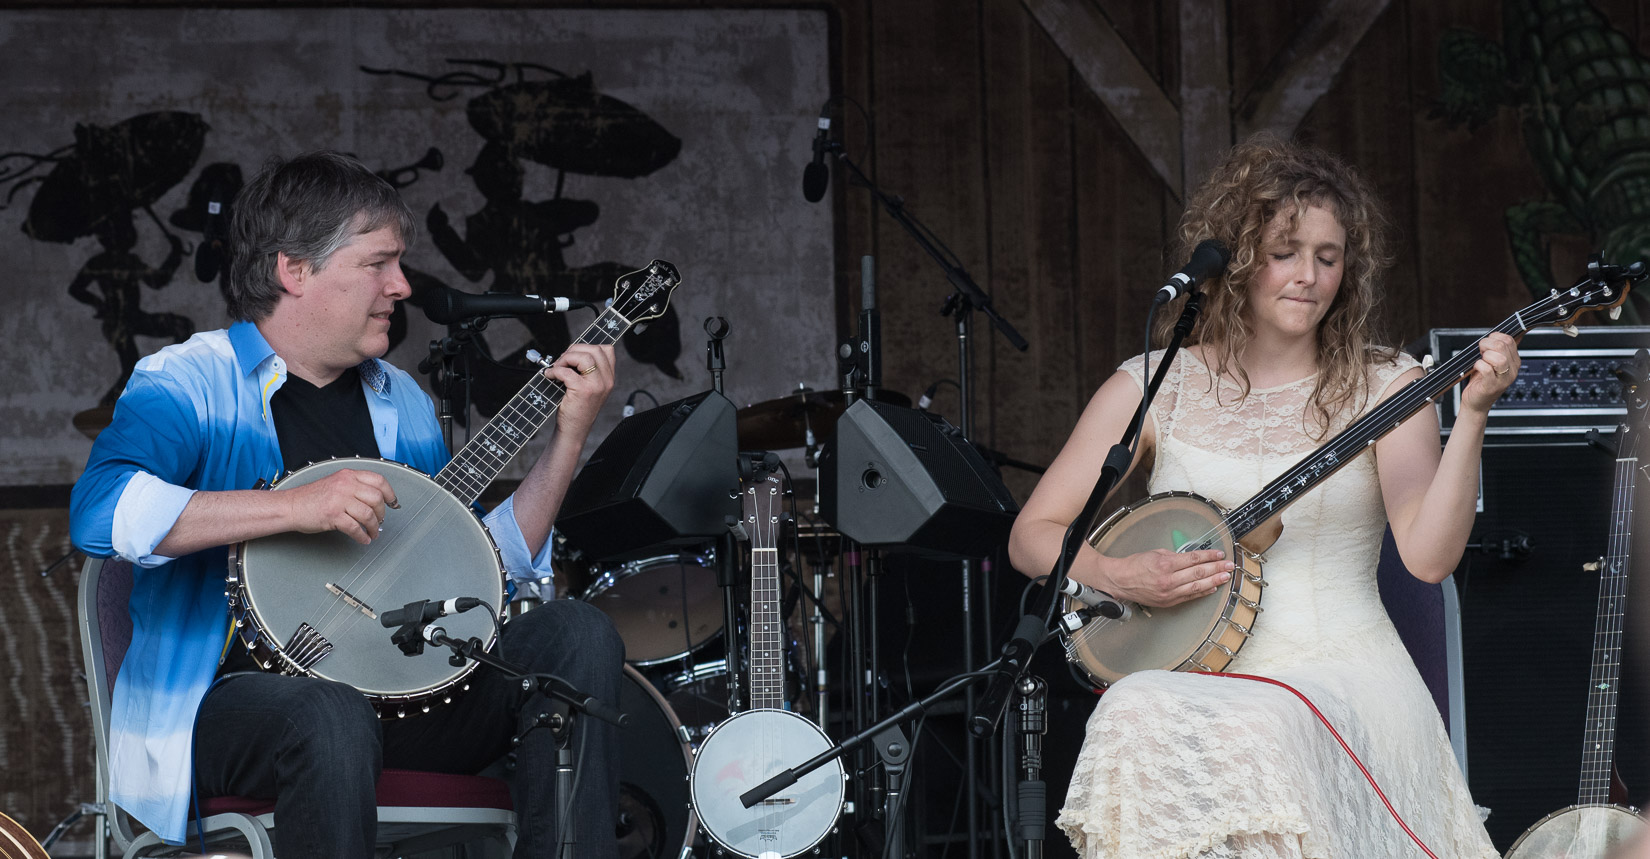 Béla Fleck and Abigail Washburn, Jazz Fest 2015, New Orleans Jazz and Heritage Festival